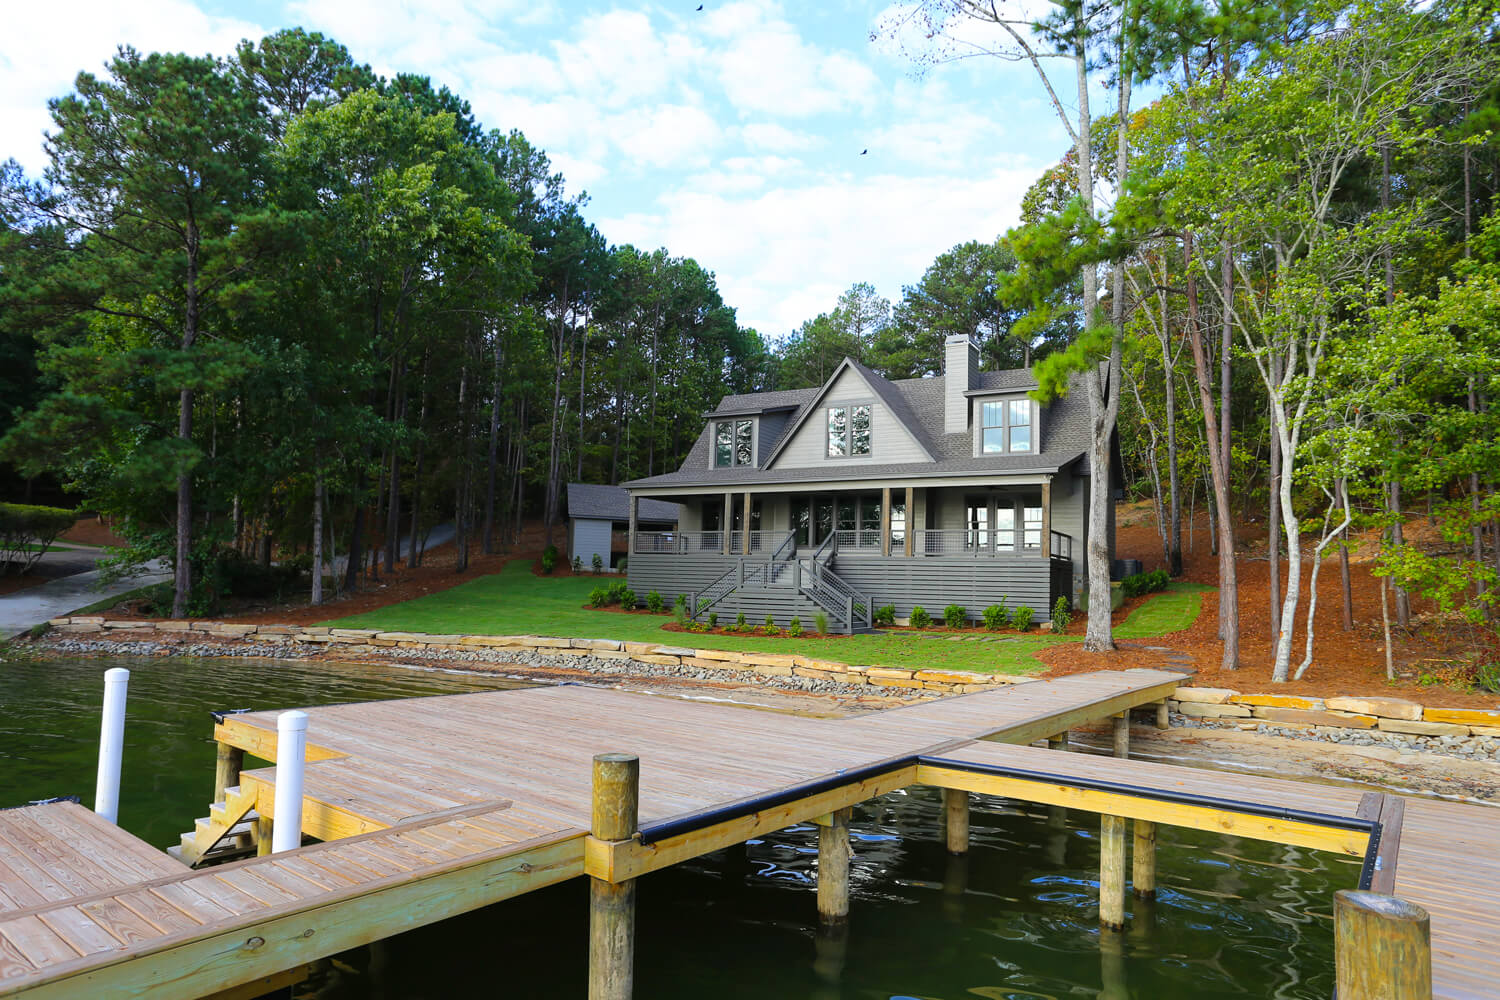 Lake House - View from the Pier - Designed by Foshee Architecture